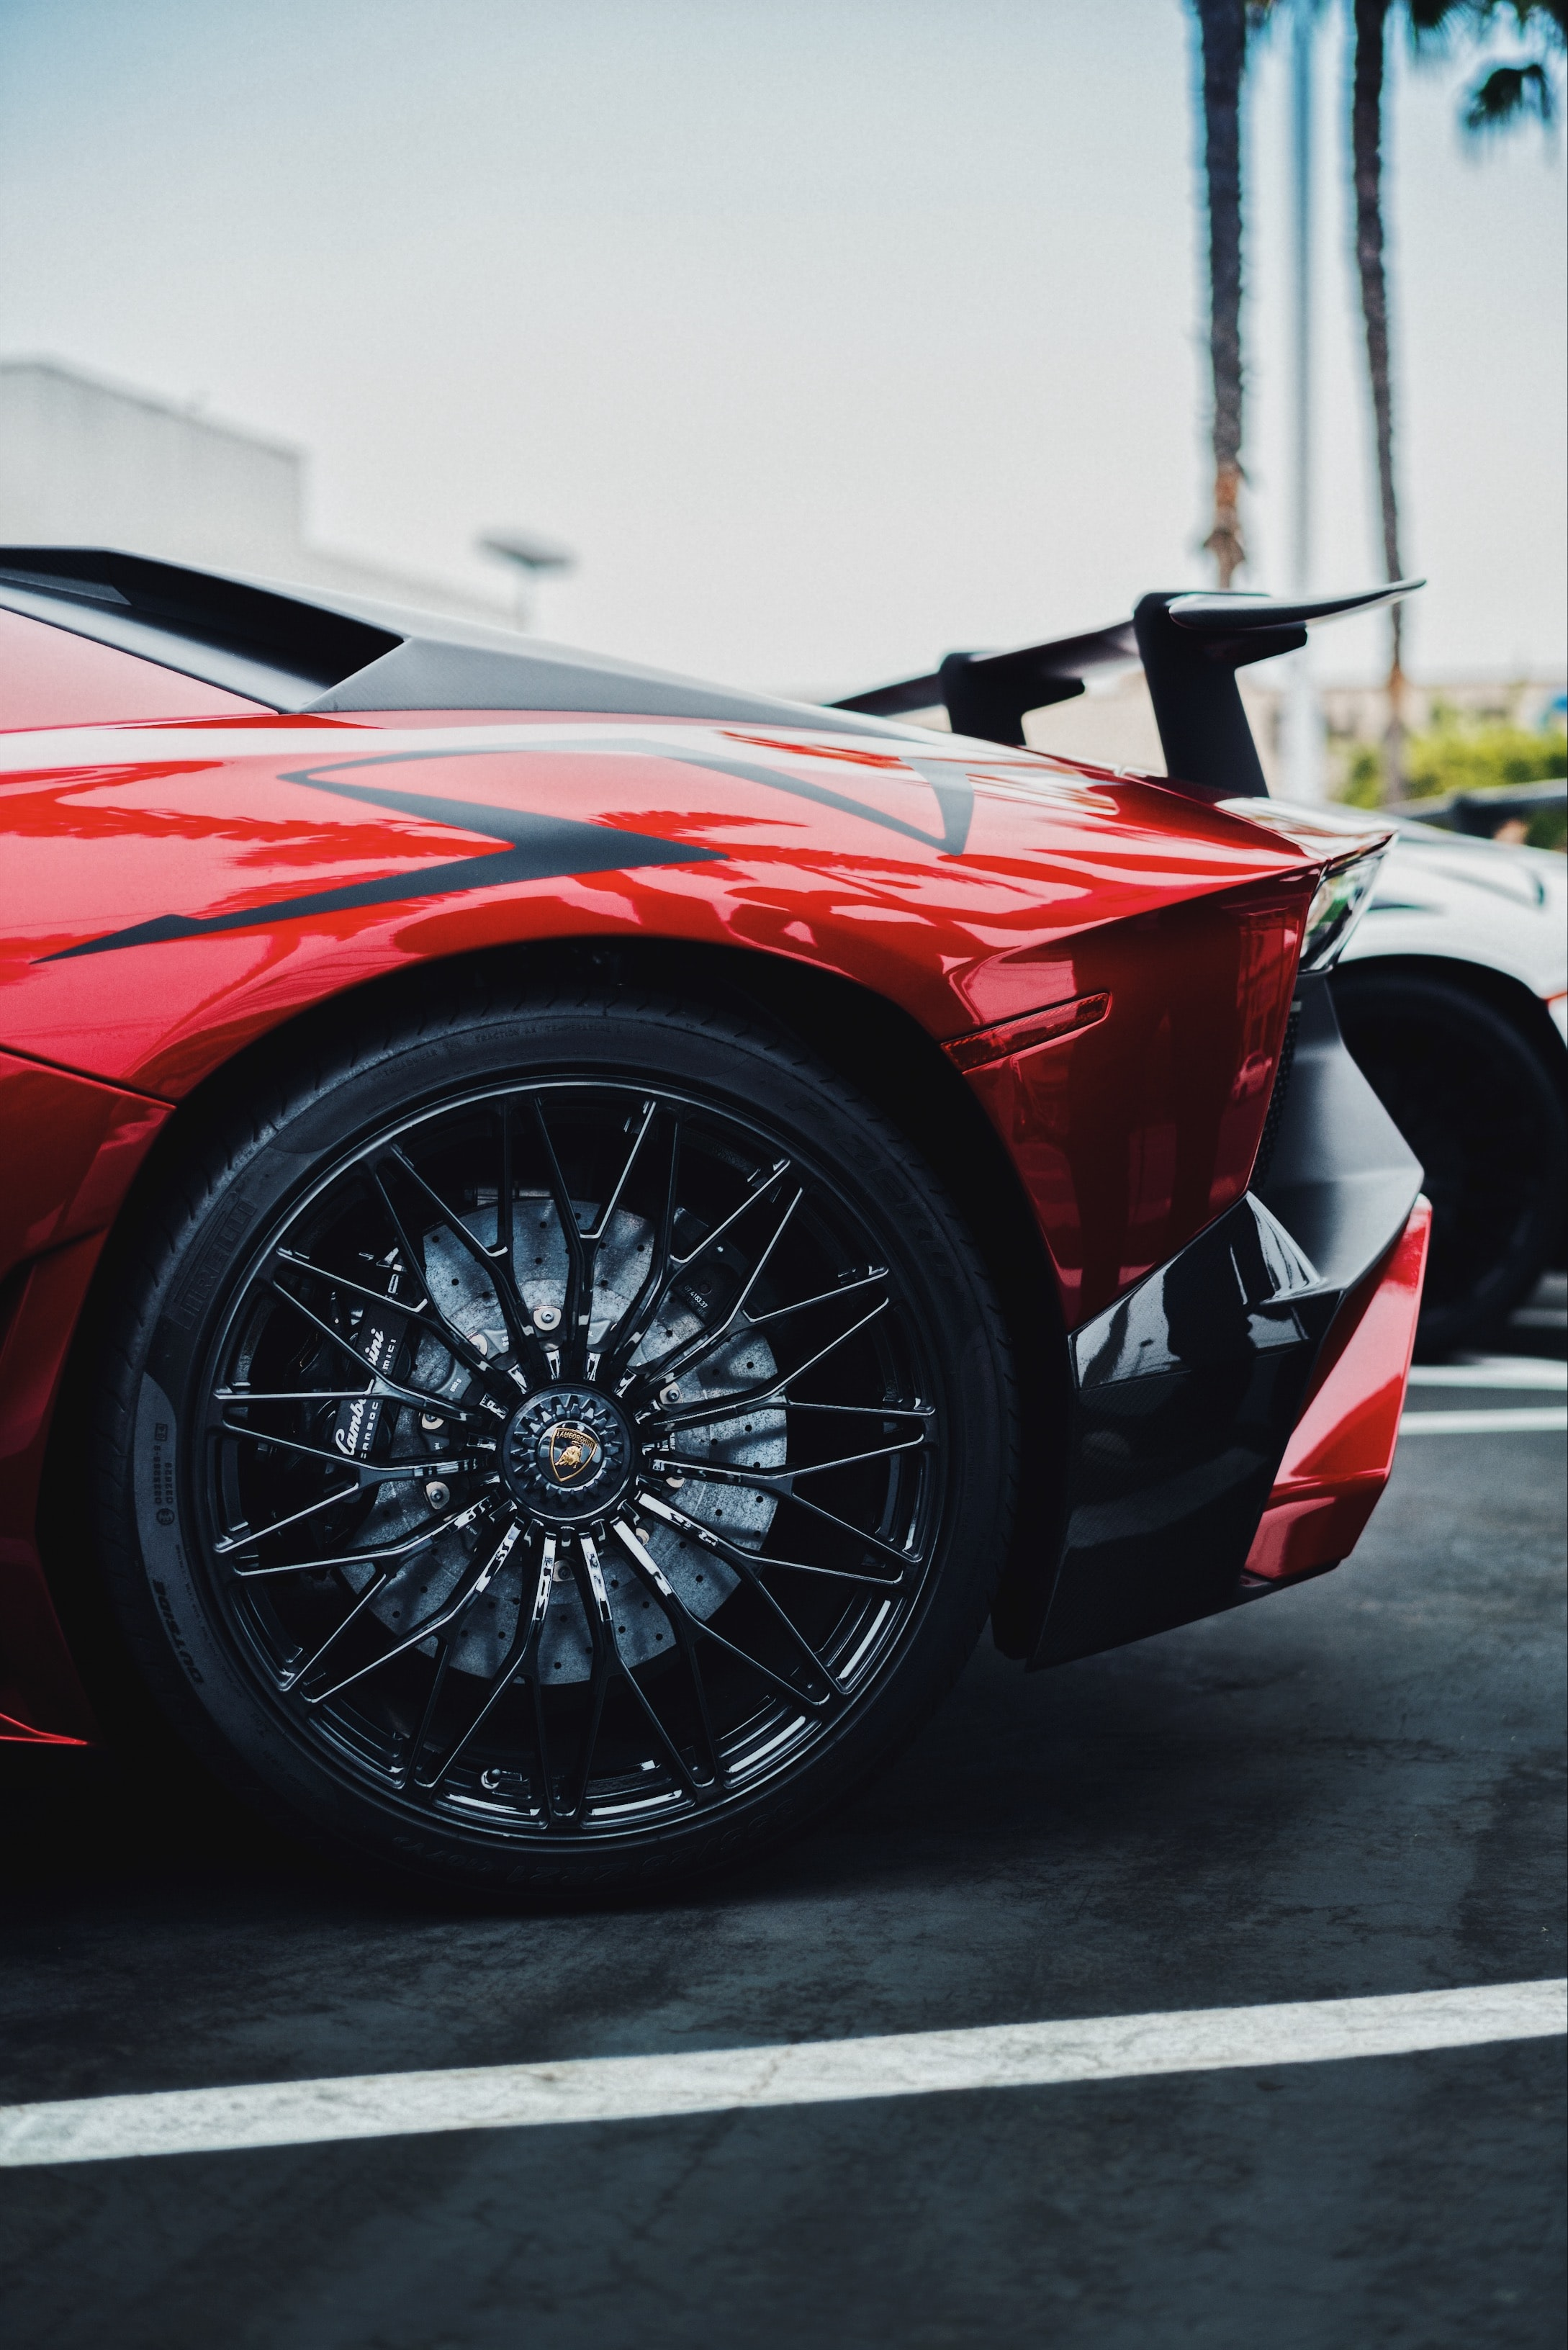 black and red Lamborghini Aventador SV rear left side